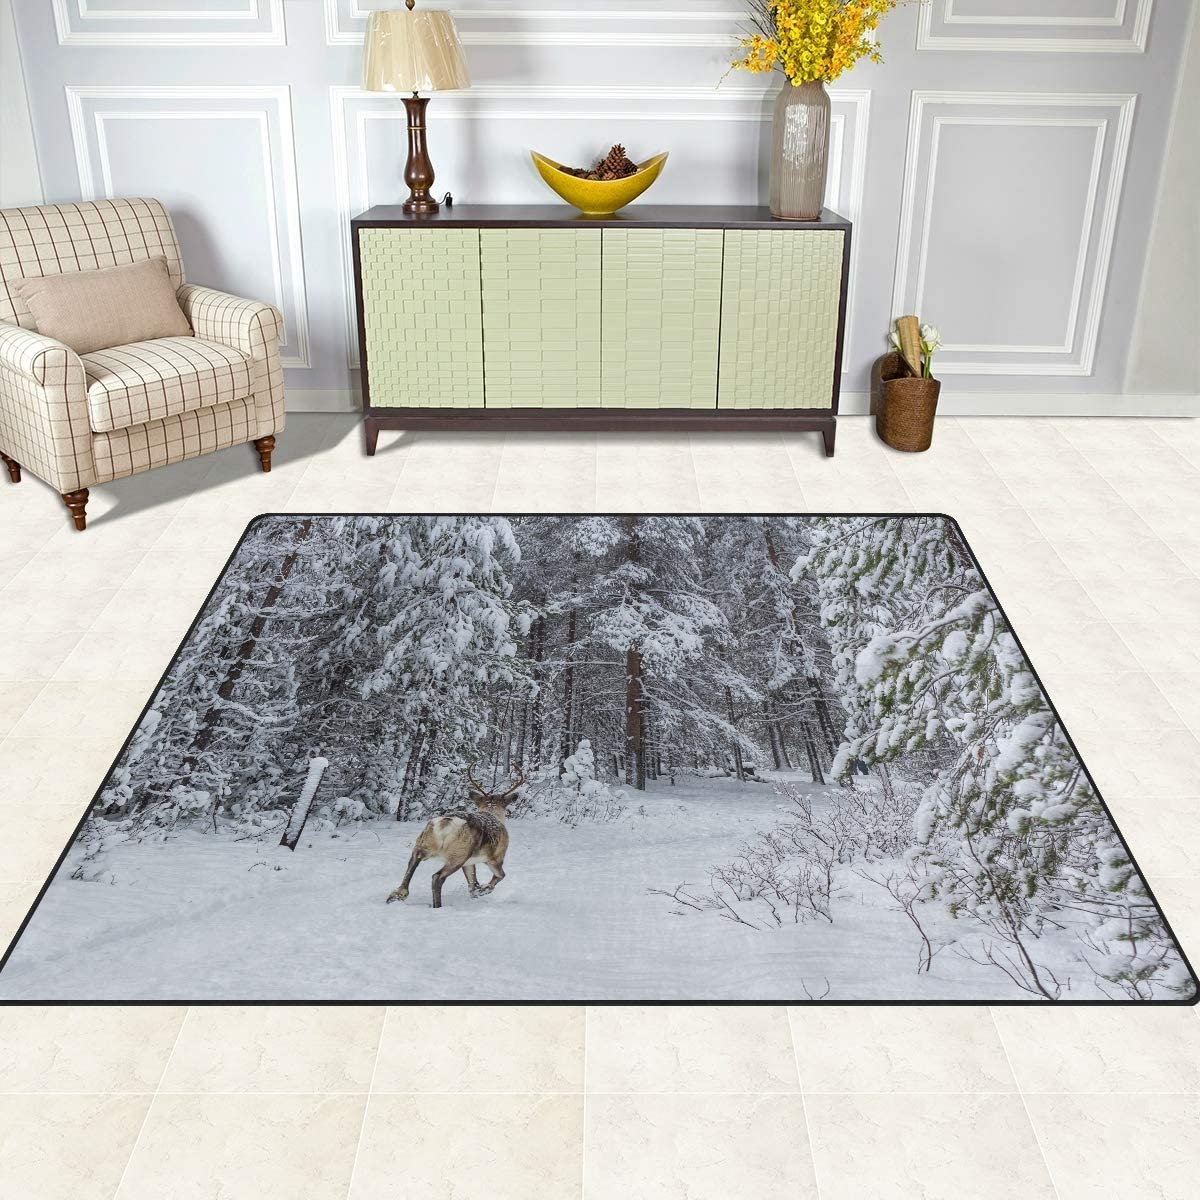 Christmas Rugs 5x4 for Living Room, Large Holiday Area Rugs Mats for Bedroom Winter Forest Deer